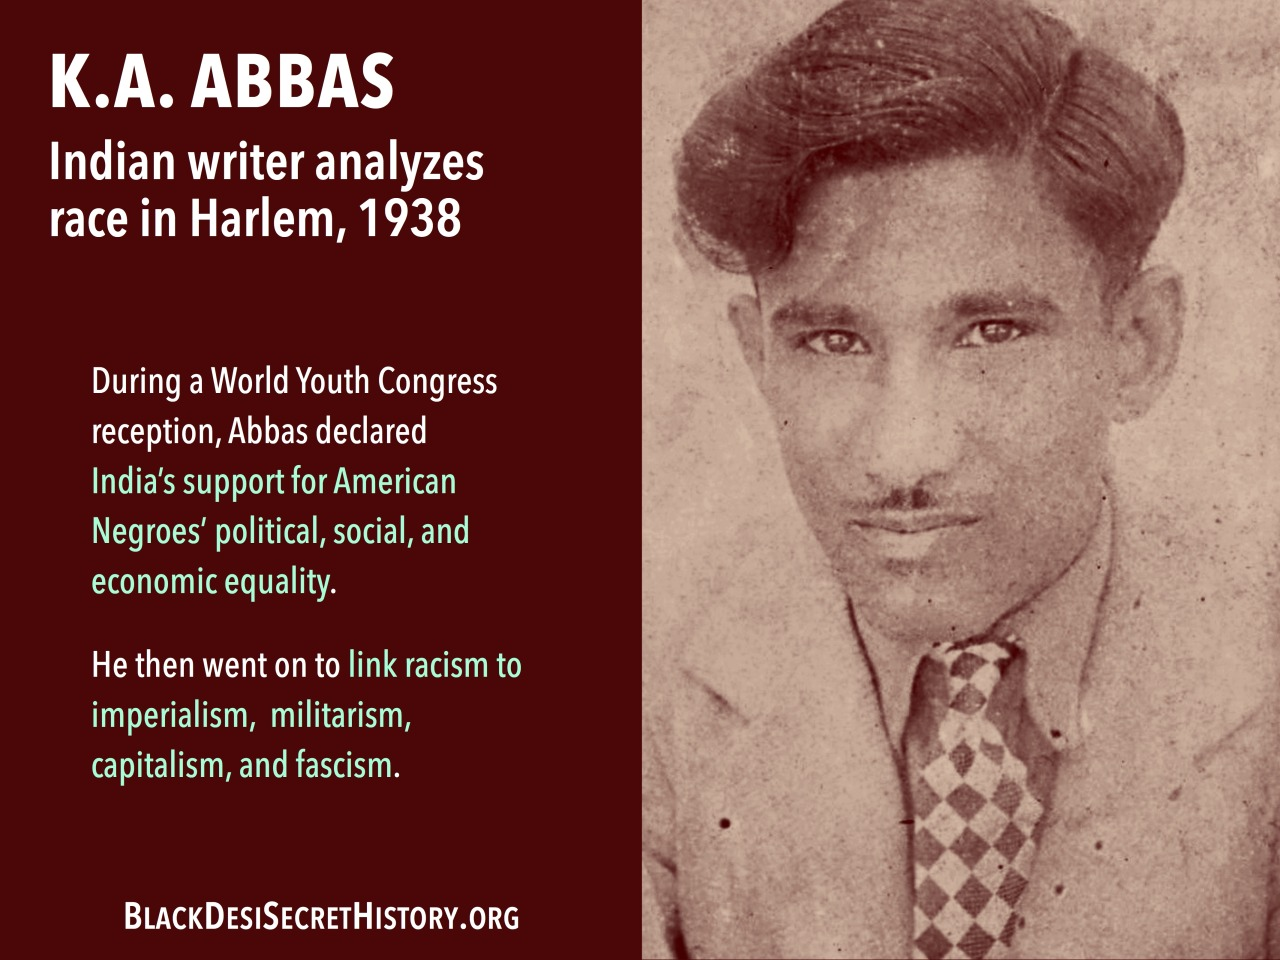 K.A. ABBAS,